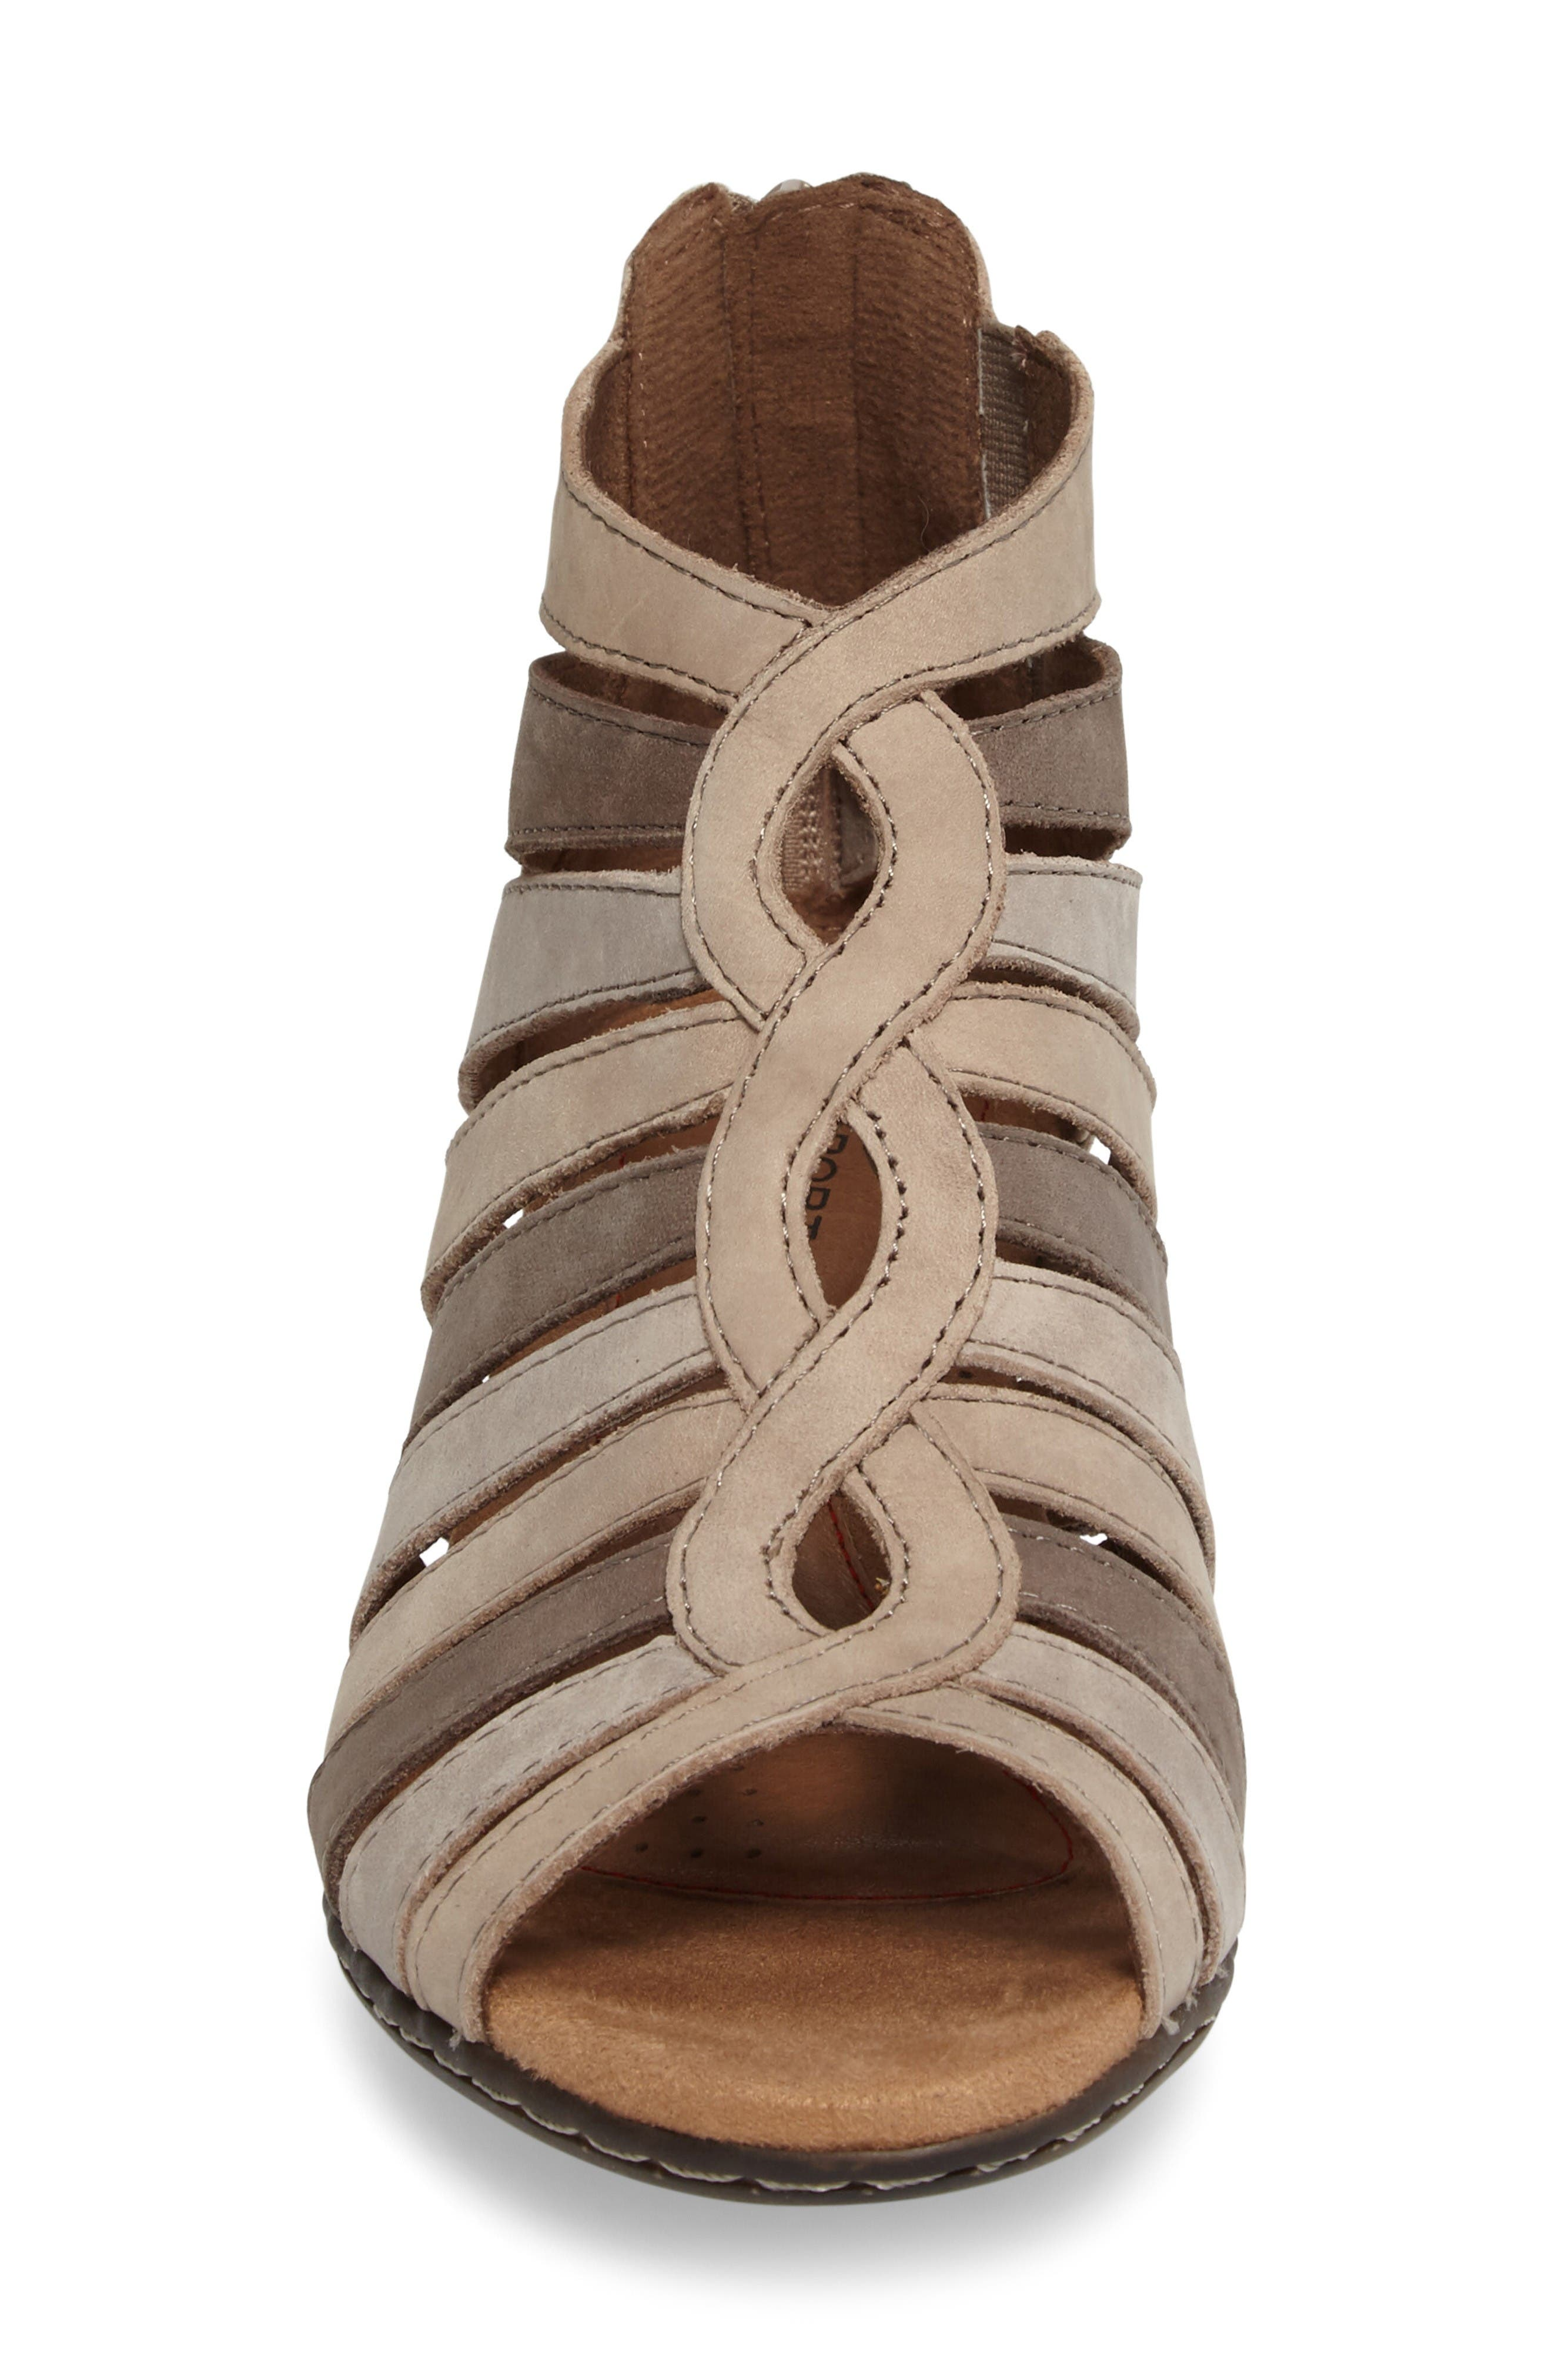 Abbott Caged Sandal,                             Alternate thumbnail 4, color,                             Light Khaki Multi Leather